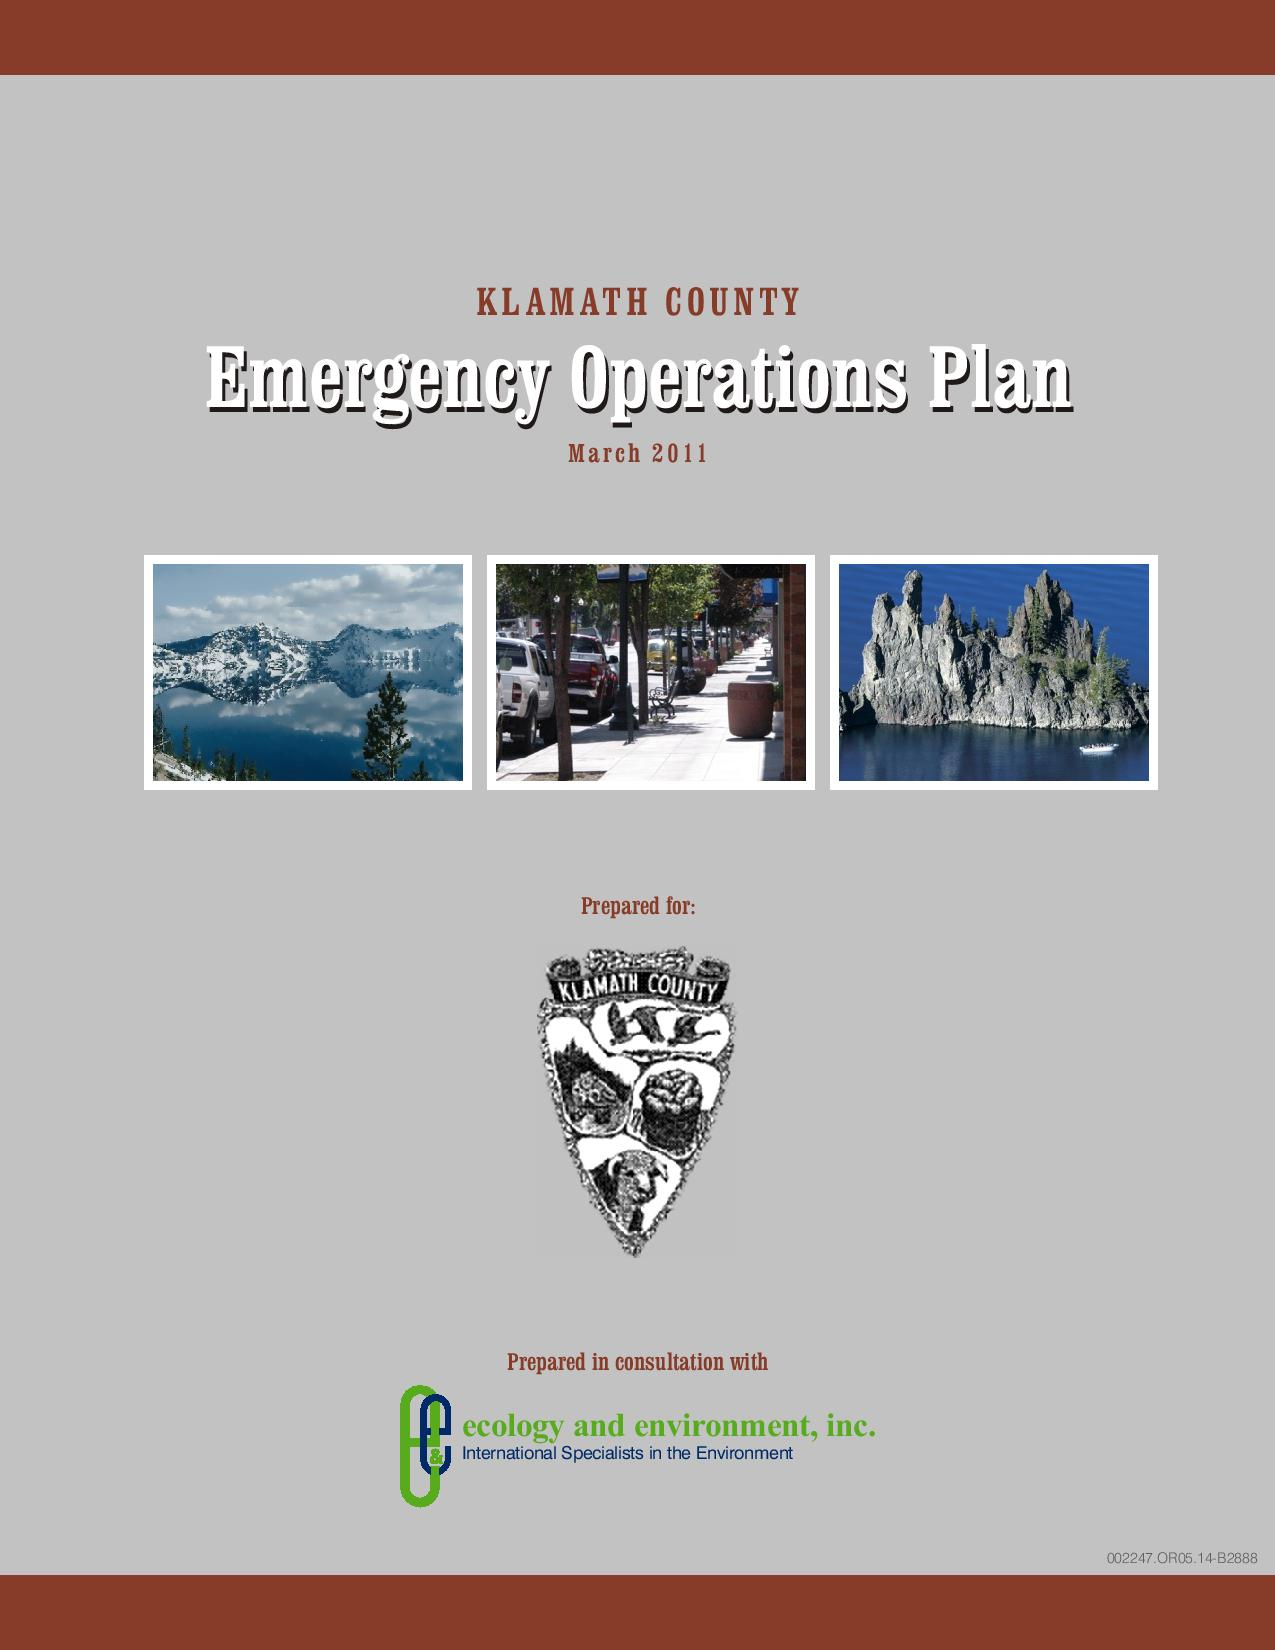 Emergency Operations Plan Cover Opens in new window